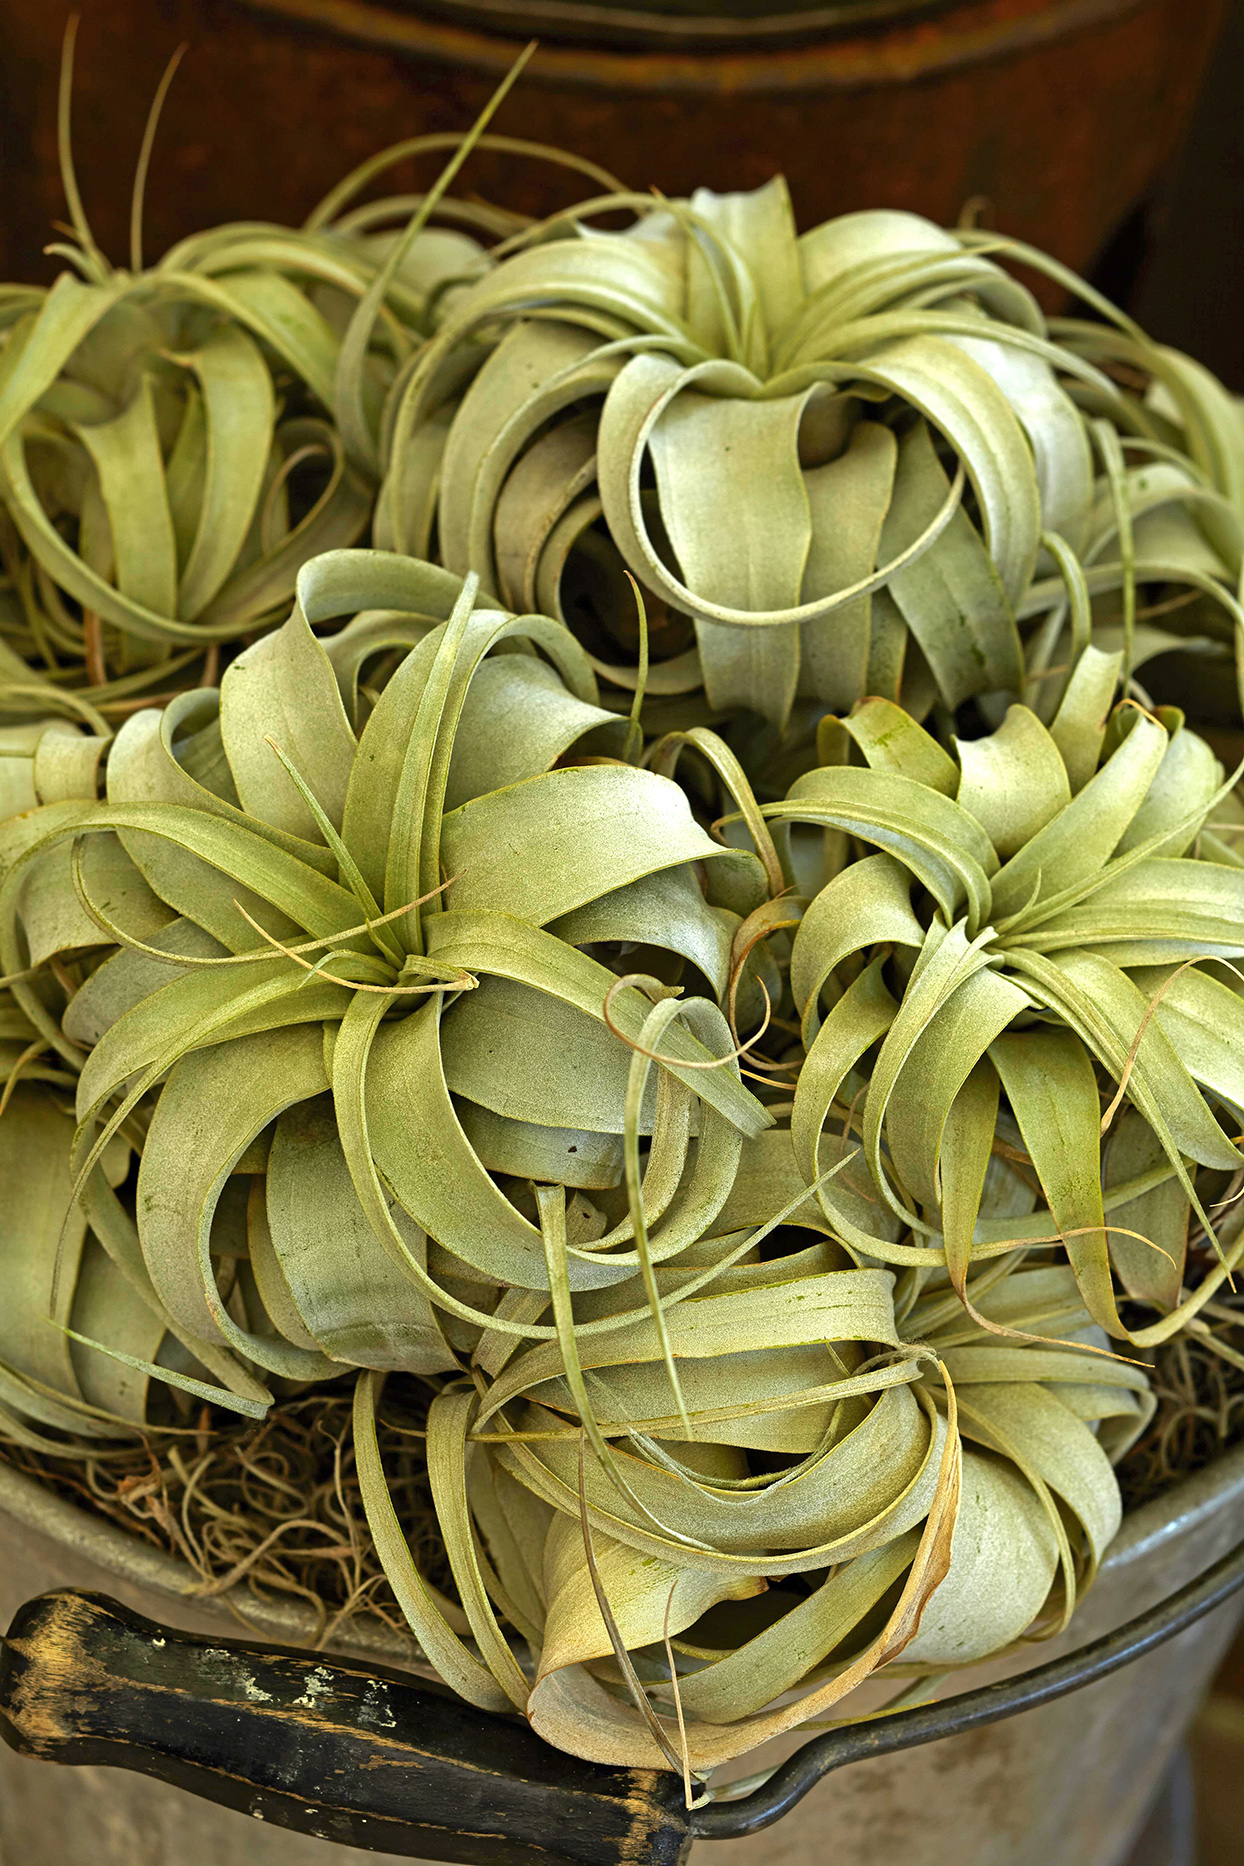 yellow-green air plants in pot